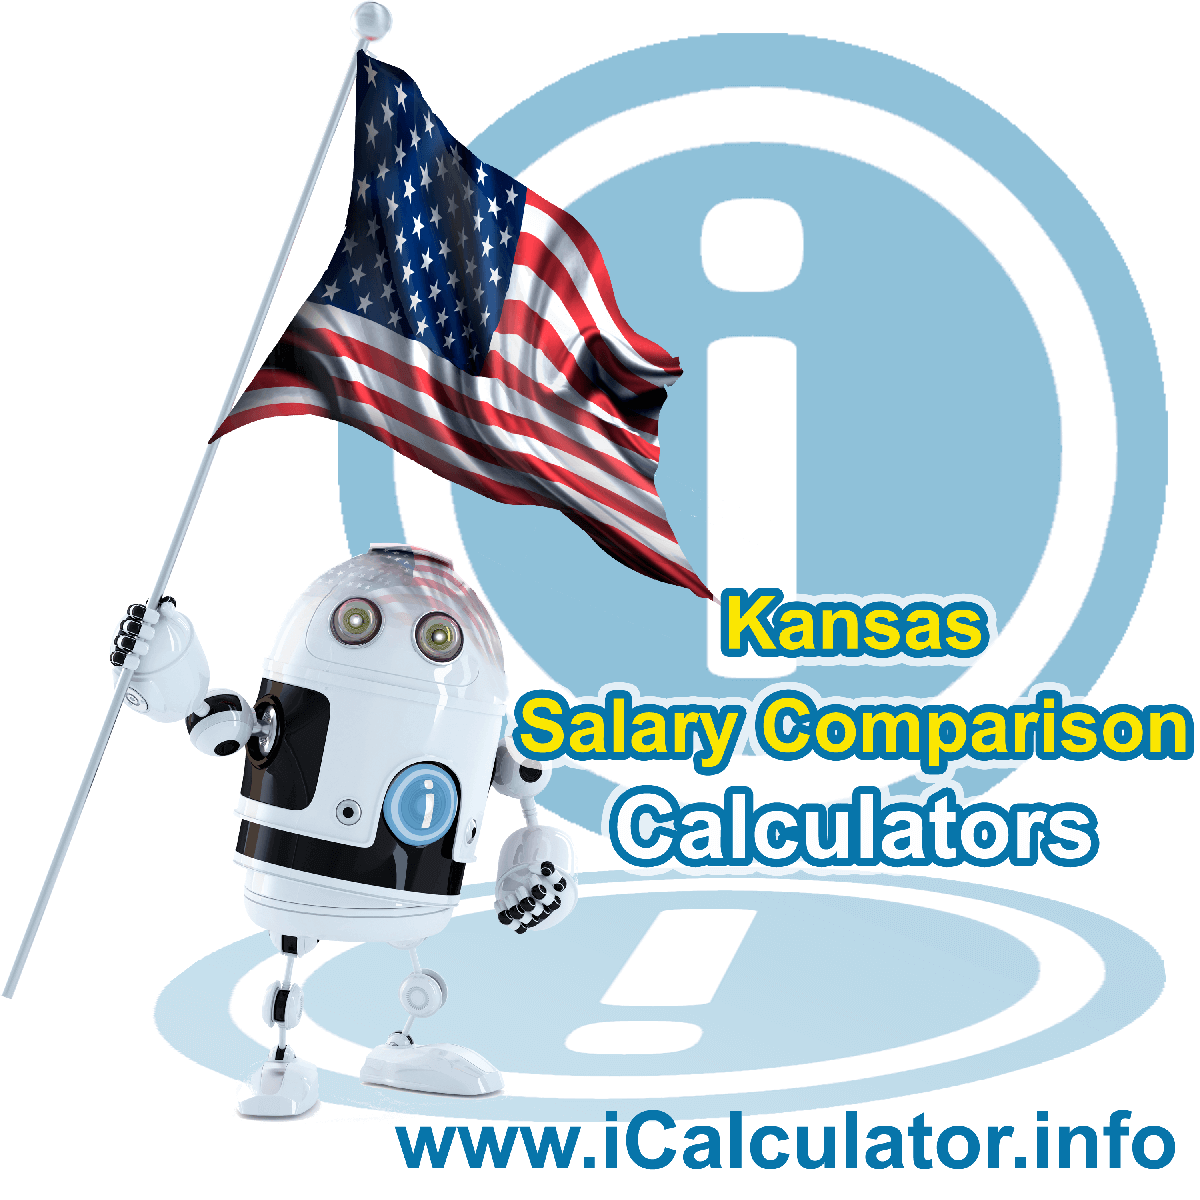 Kansas Salary Comparison Calculator 2020 | iCalculator | The Kansas Salary Comparison Calculator allows you to quickly calculate and compare upto 6 salaries in Kansas or between other states for the 2020 tax year and historical tax years. Its an excellent tool for jobseekers, pay raise comparison and comparison of salaries between different US States